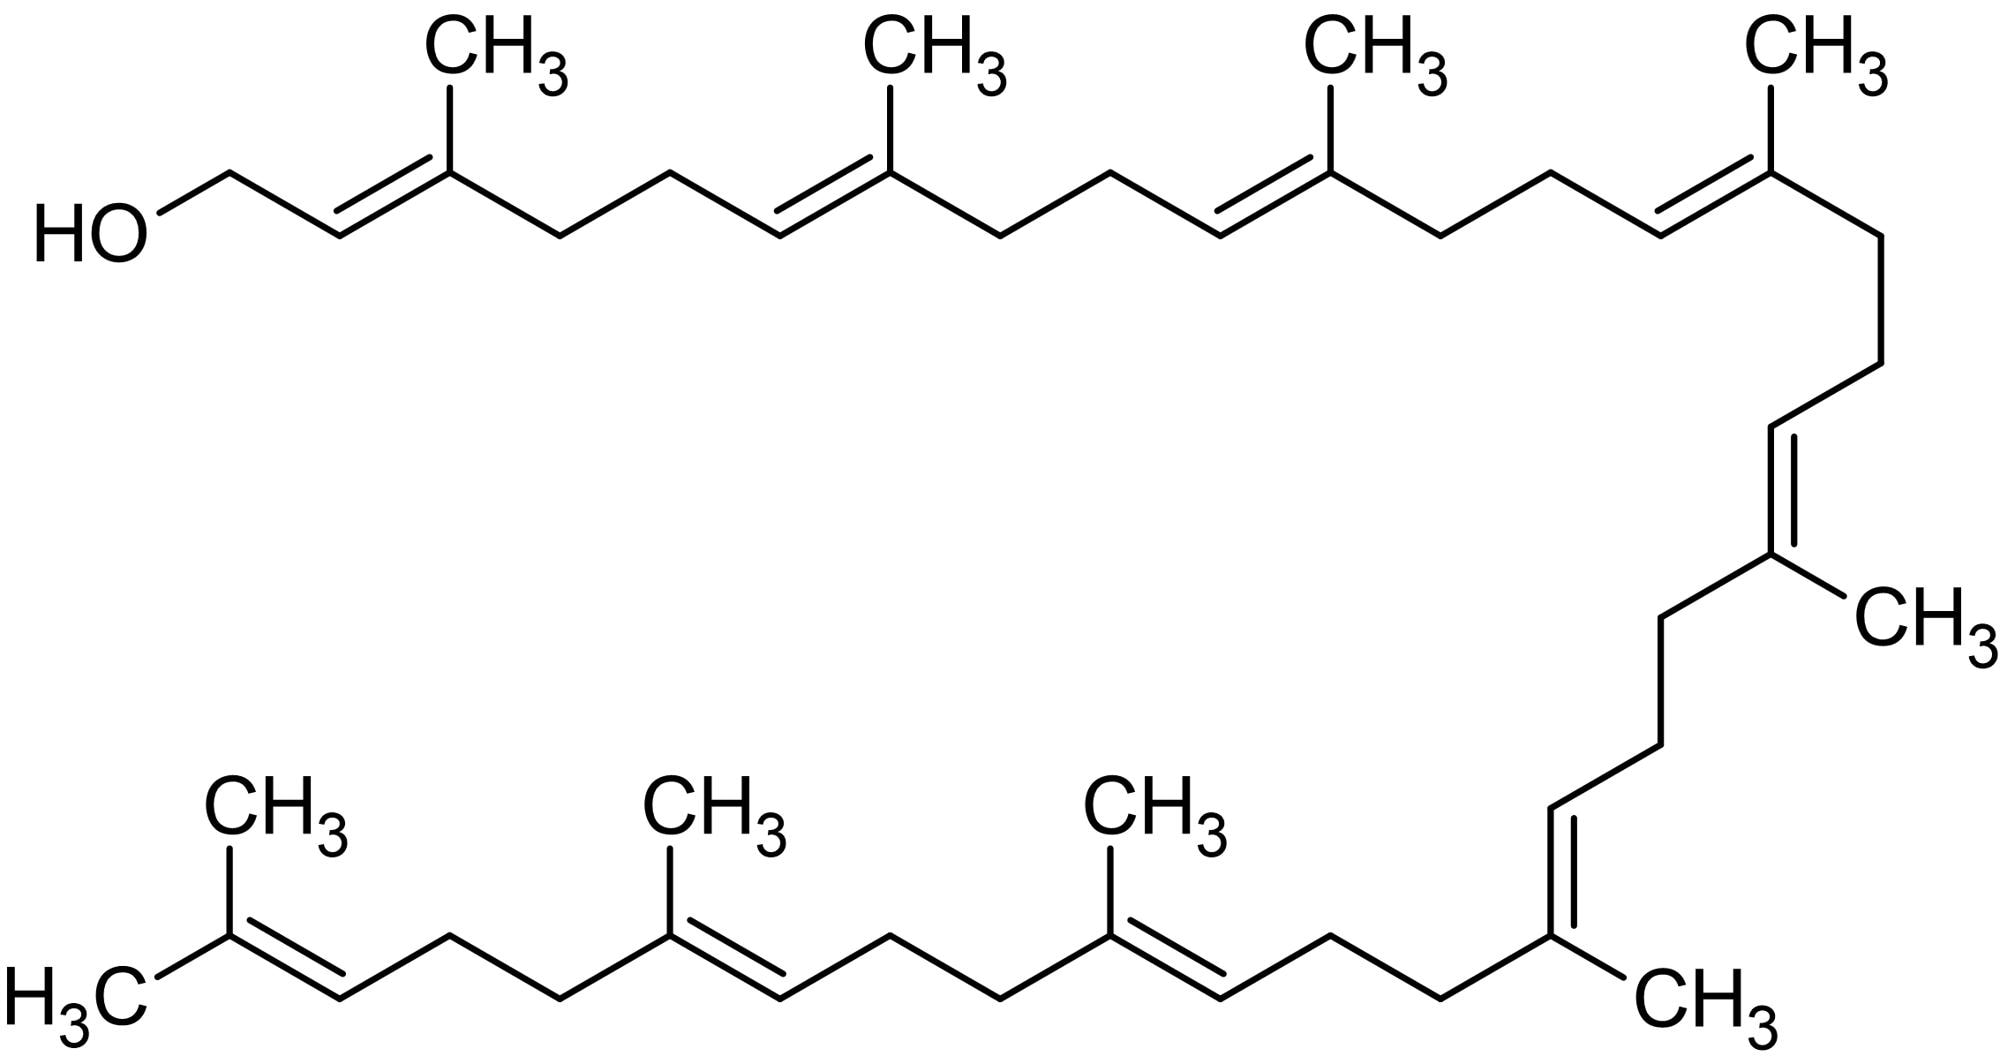 Chemical Structure - Solanesol, Phytochemical (ab142680)